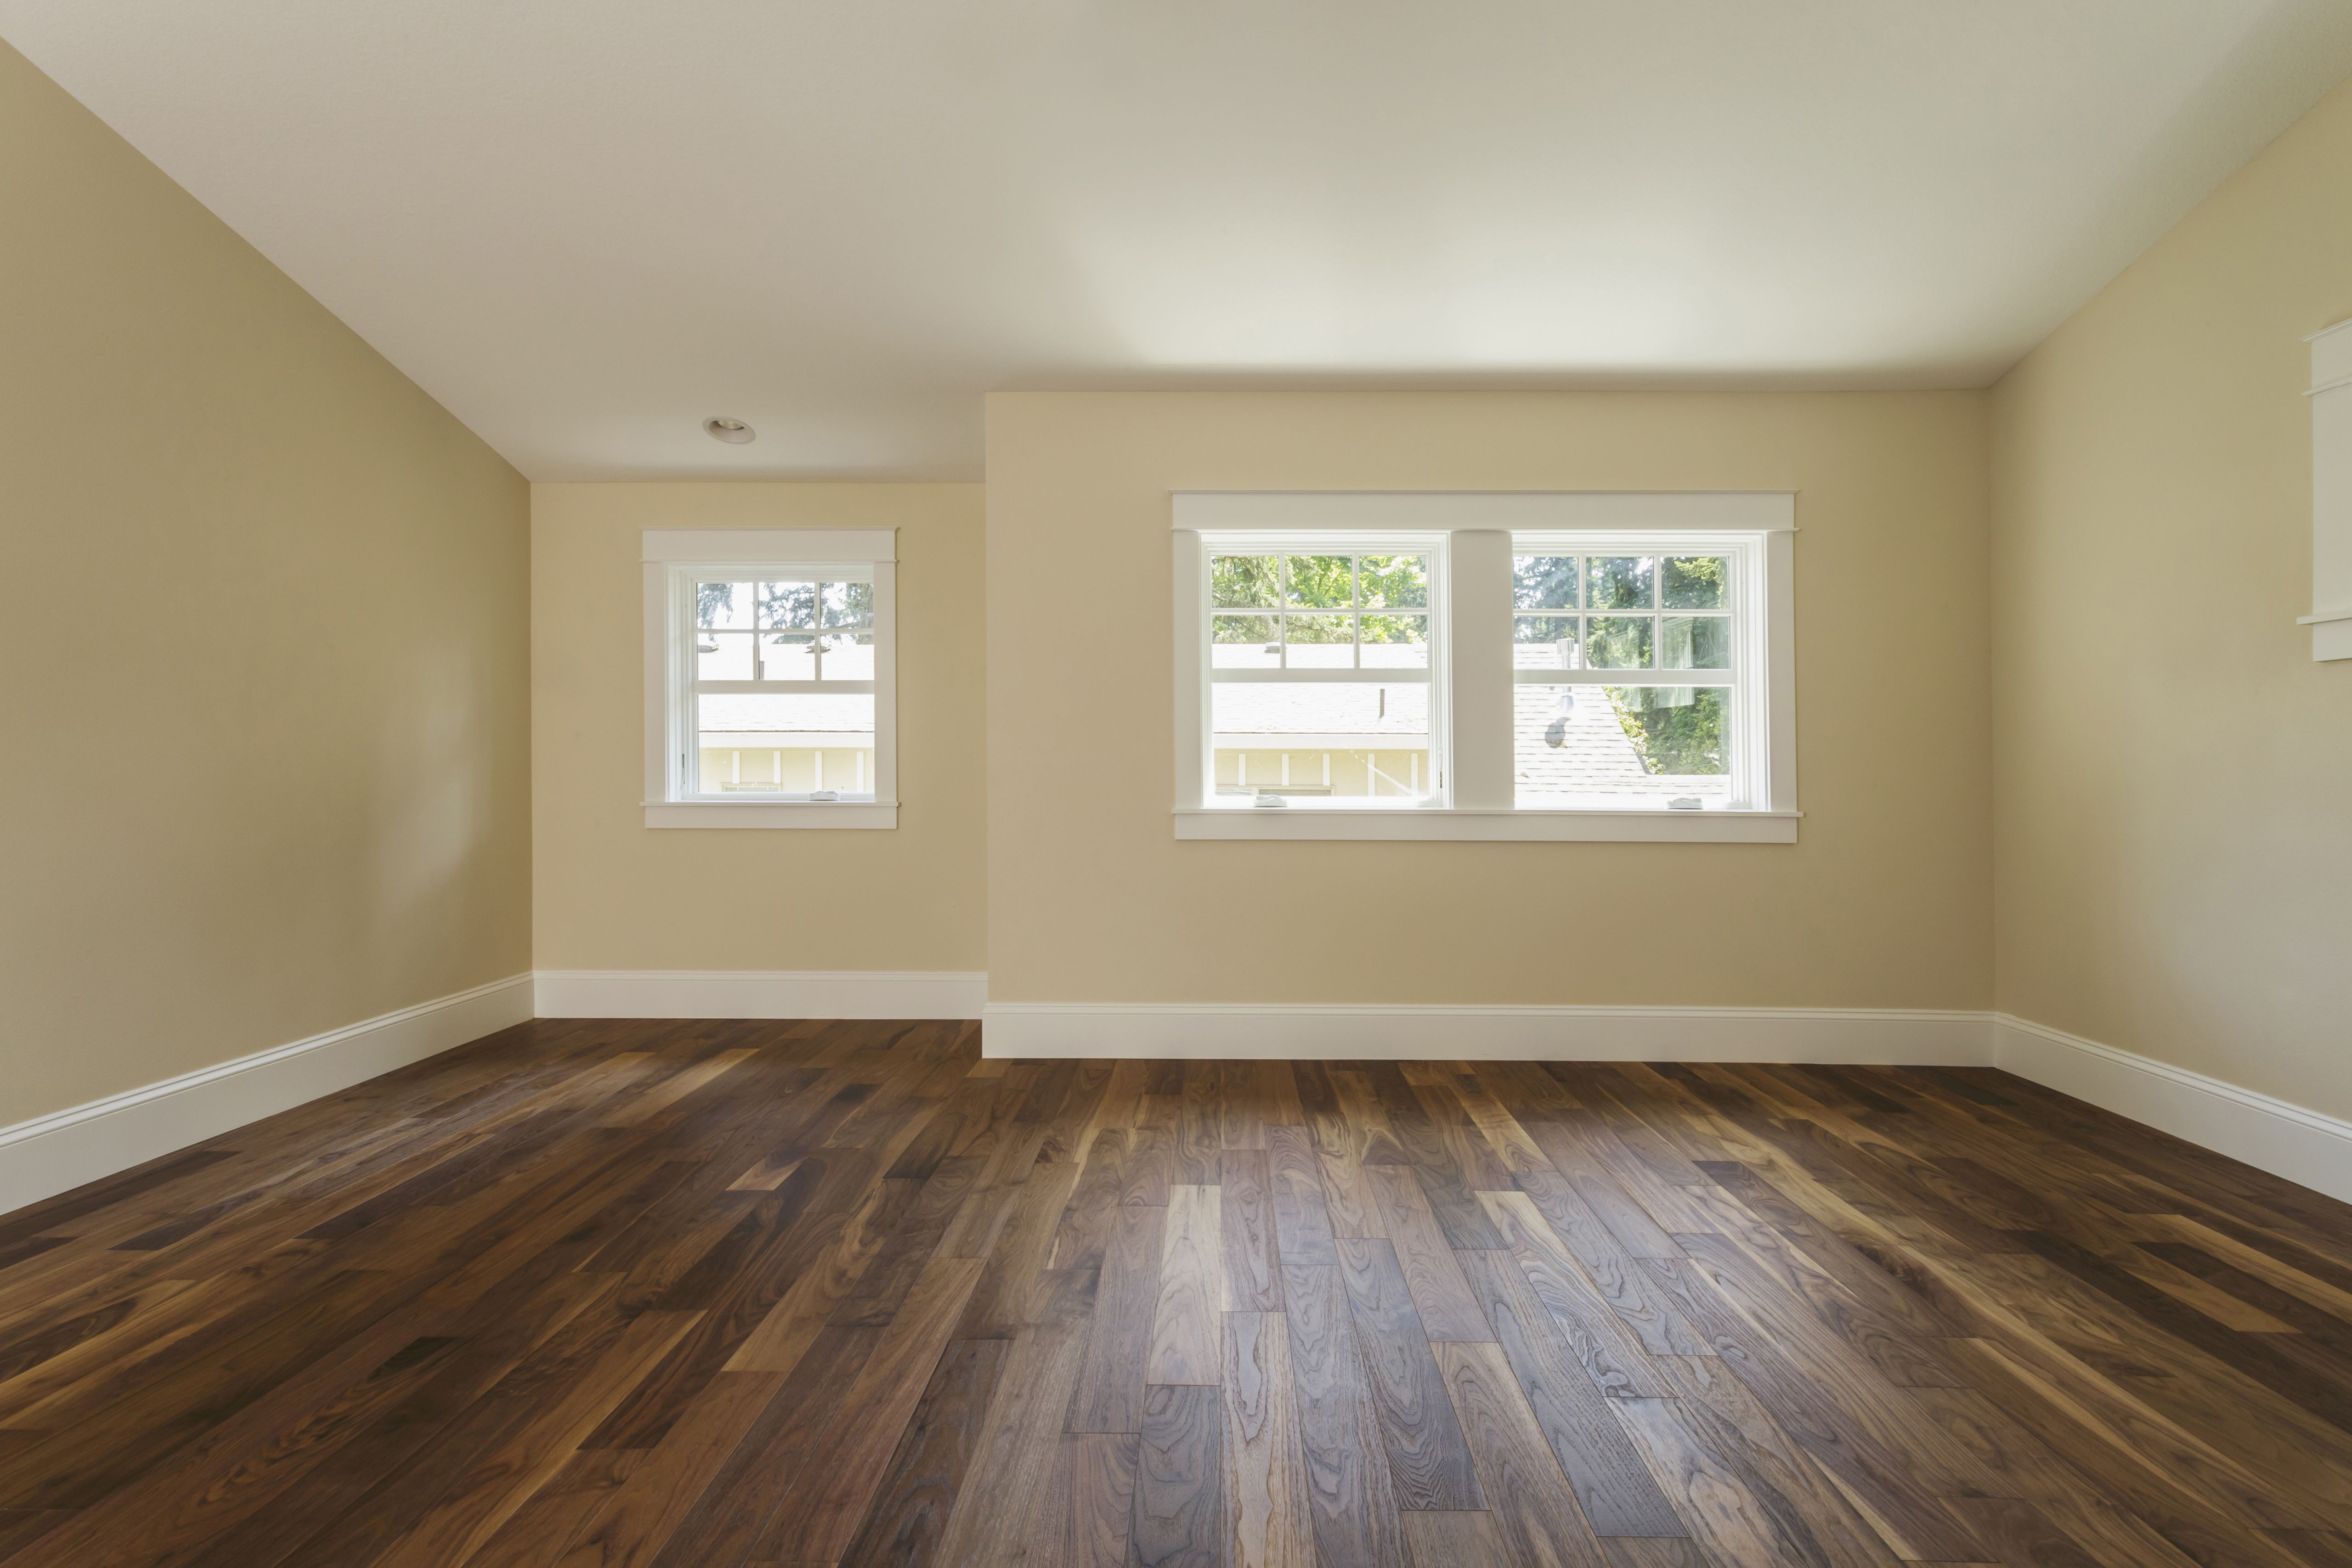 hardwood floor installation tools of its easy and fast to install plank vinyl flooring in wooden floor in empty bedroom 482143001 588bd5f45f9b5874eebd56e9